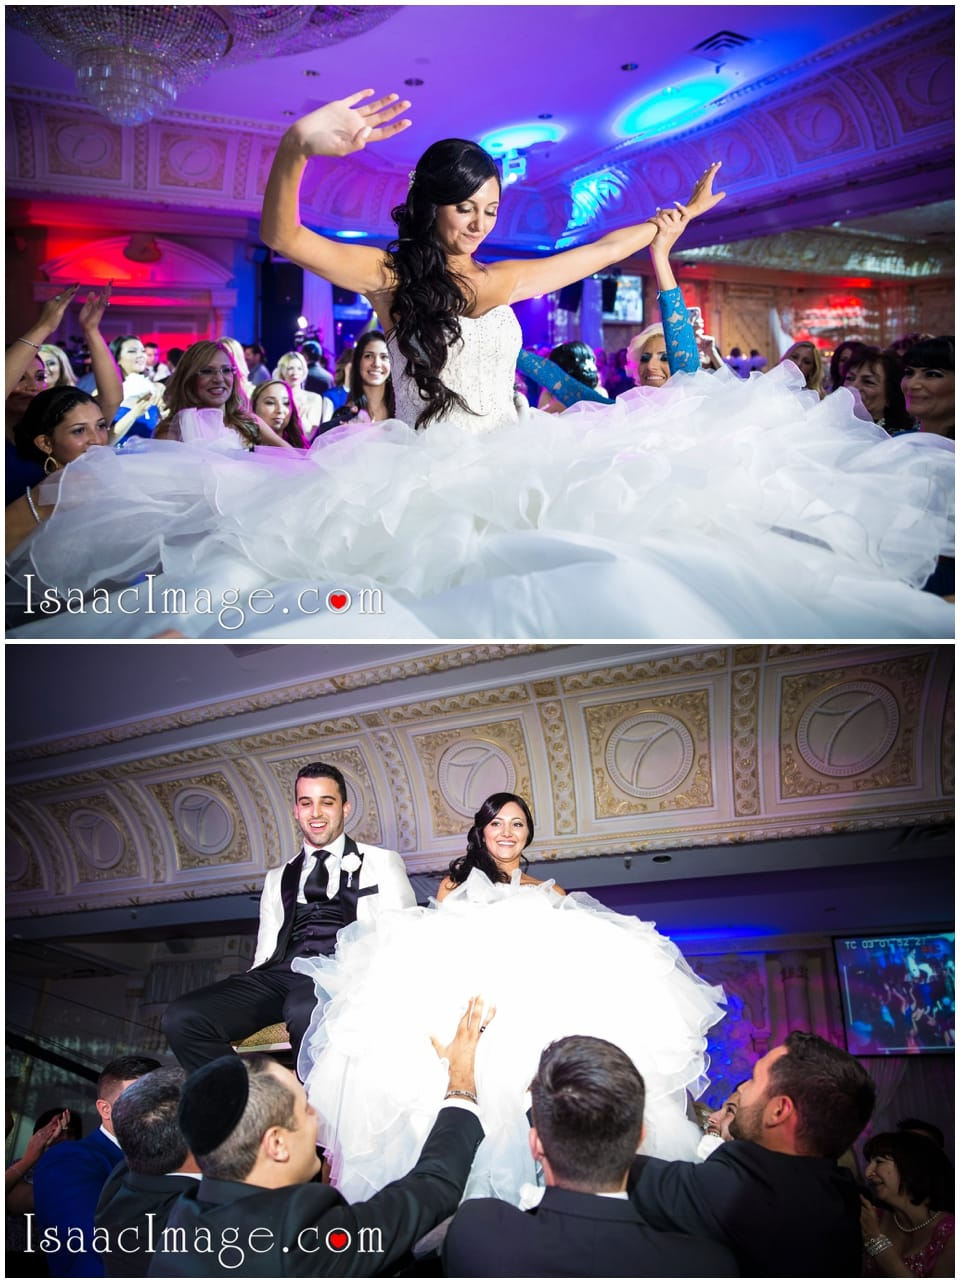 lifting up bride and groom jewish wedding